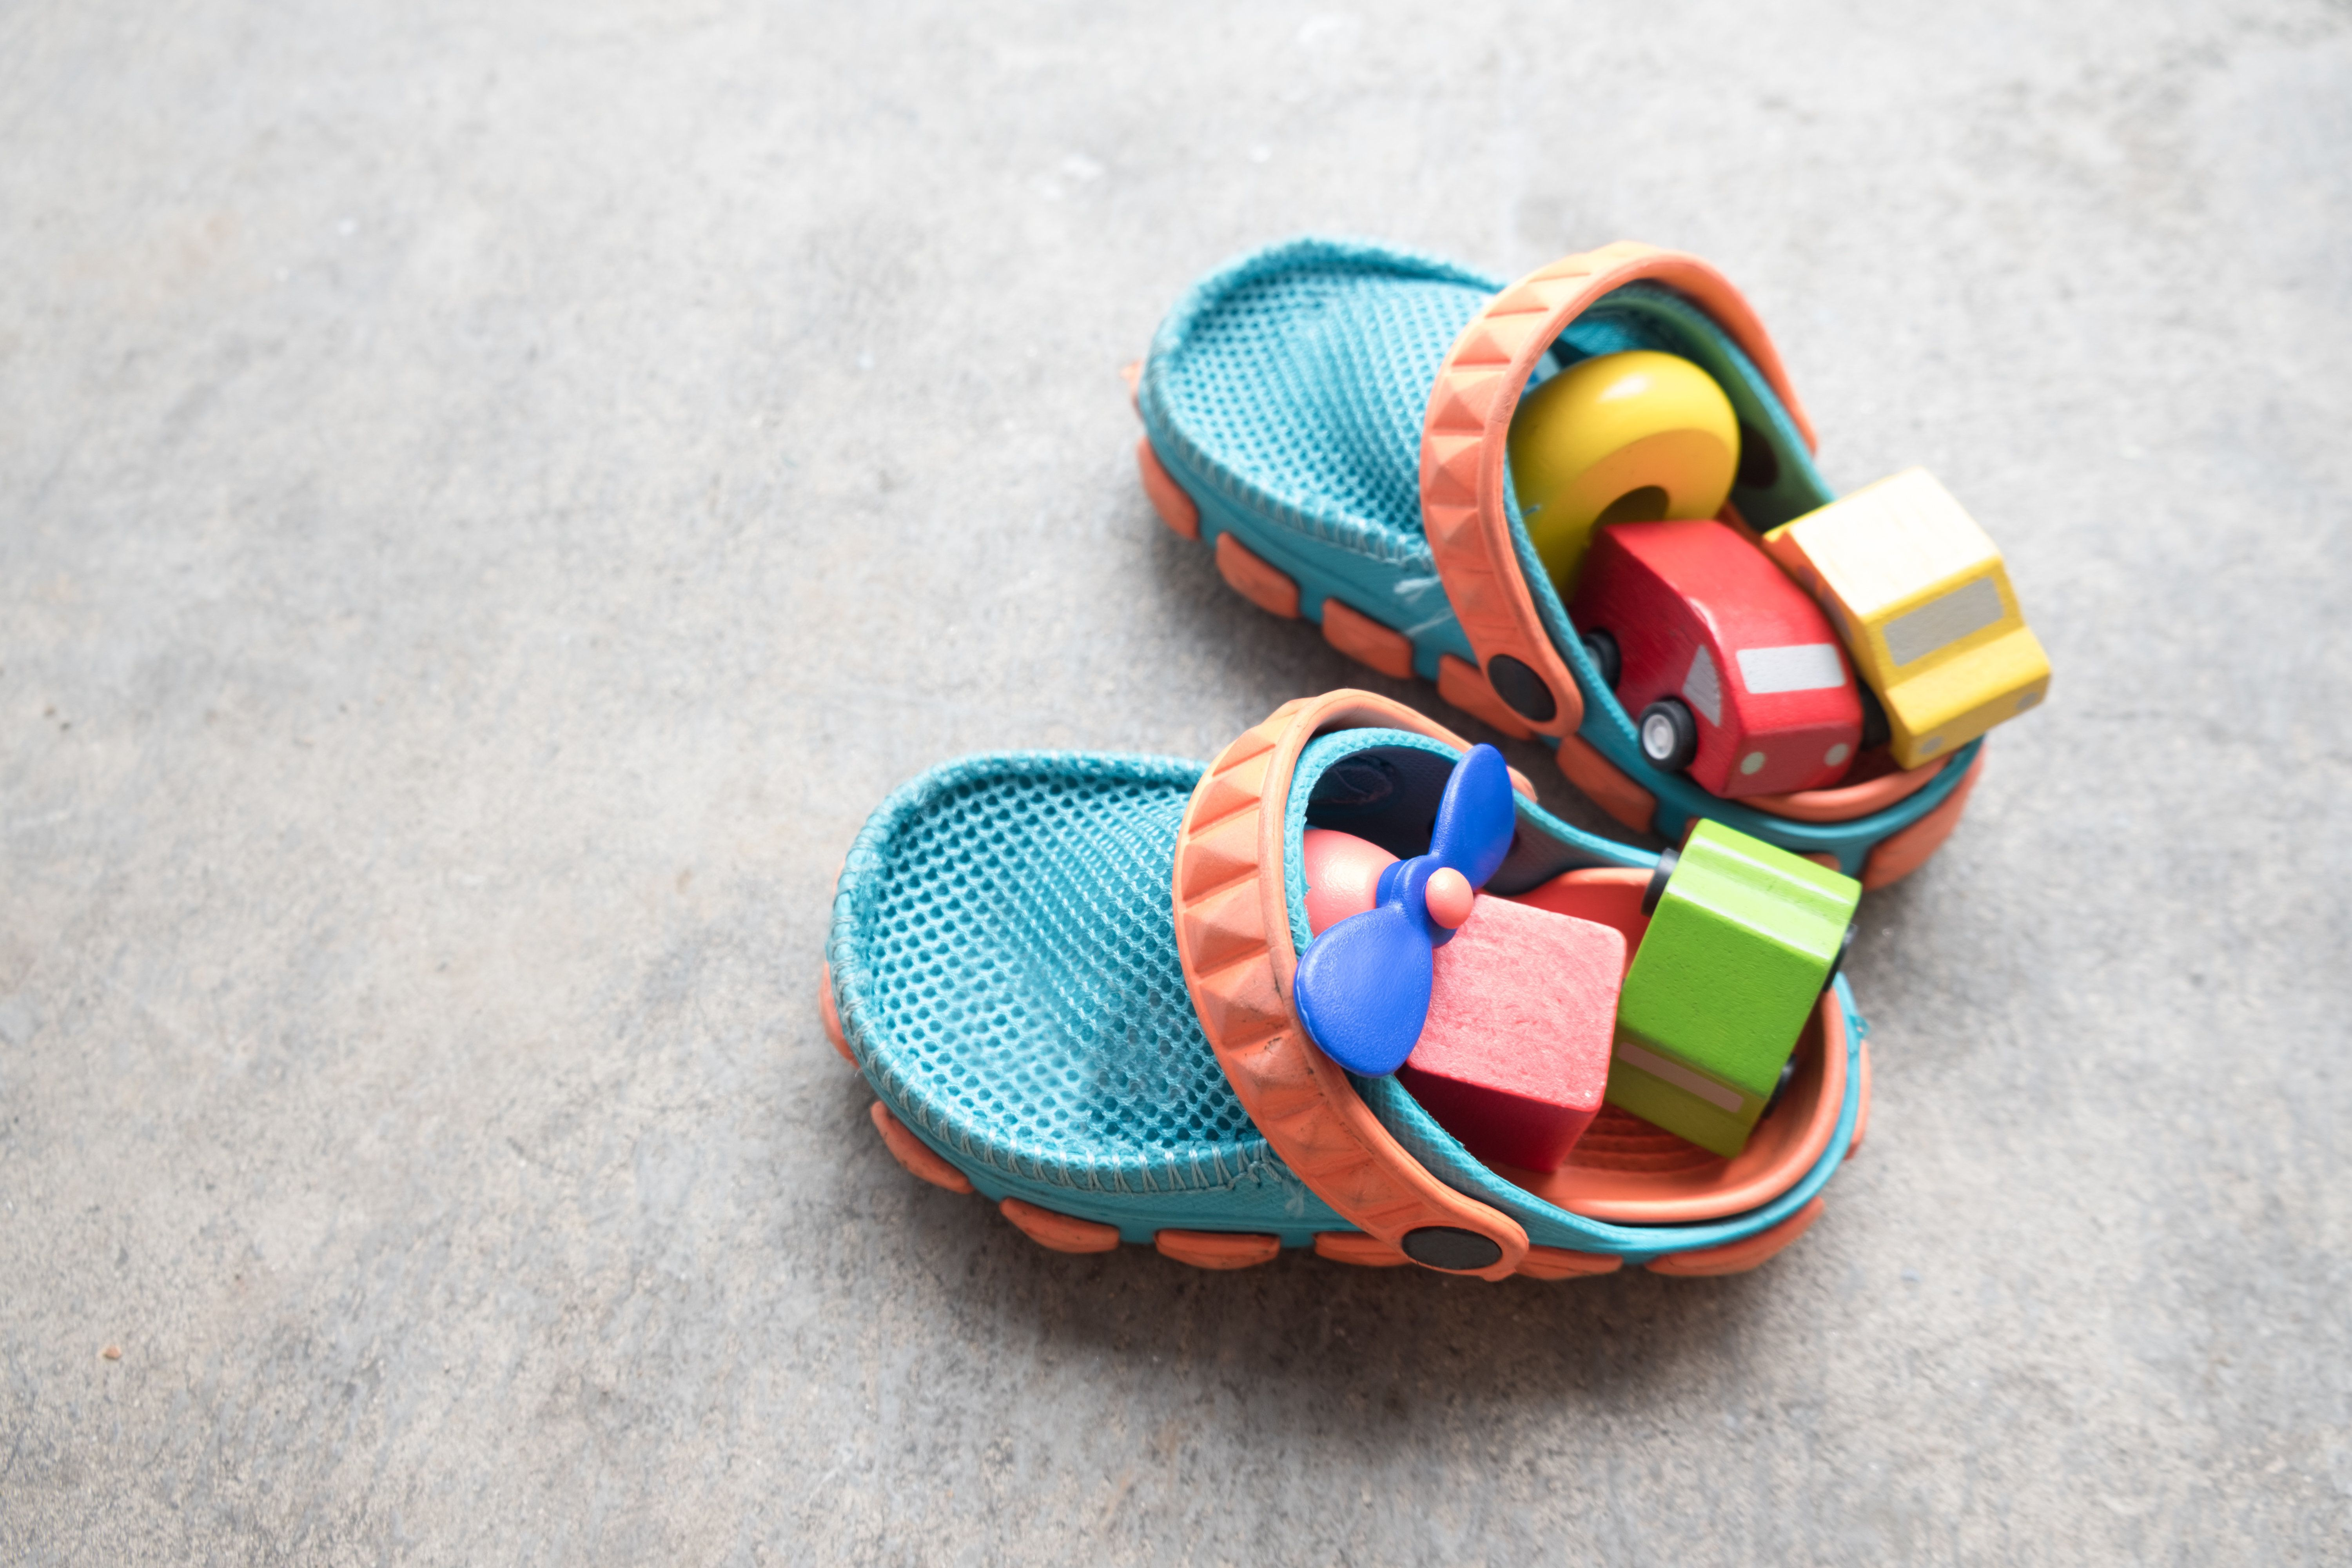 clarks shoes for kids